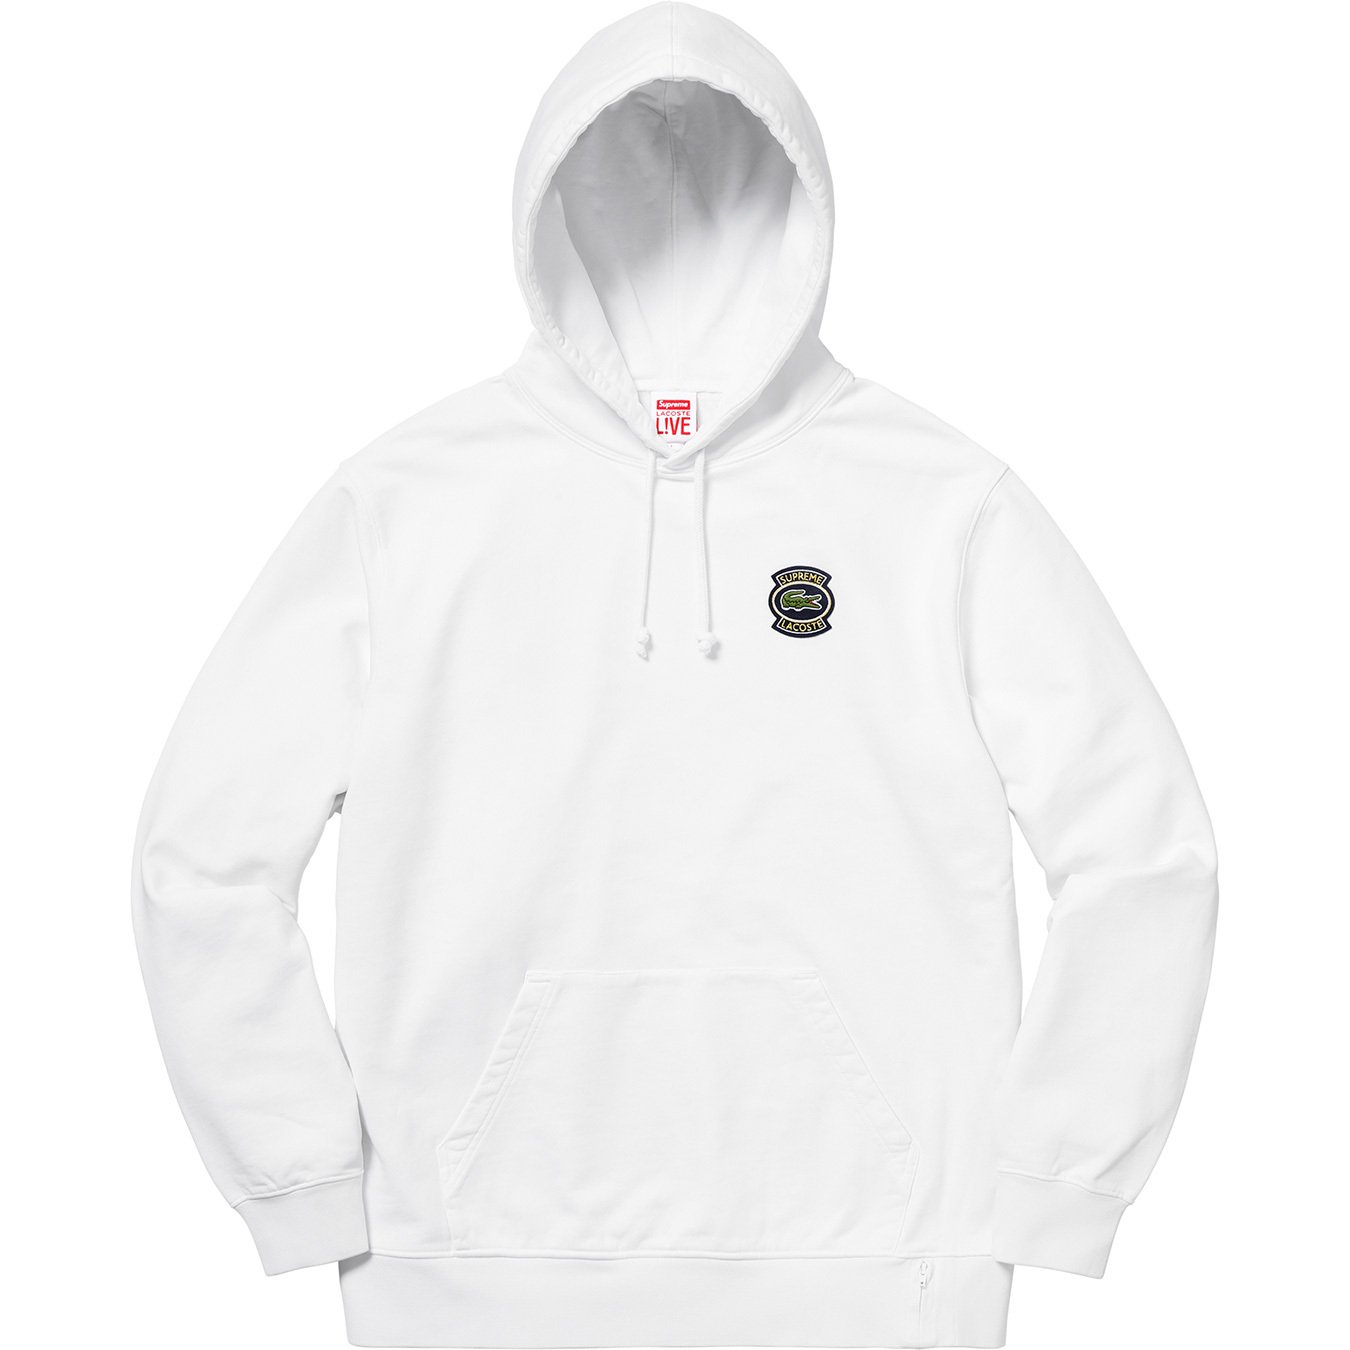 supreme-lacoste-18ss-collaboration-release-201180421-hooded-sweatshirt